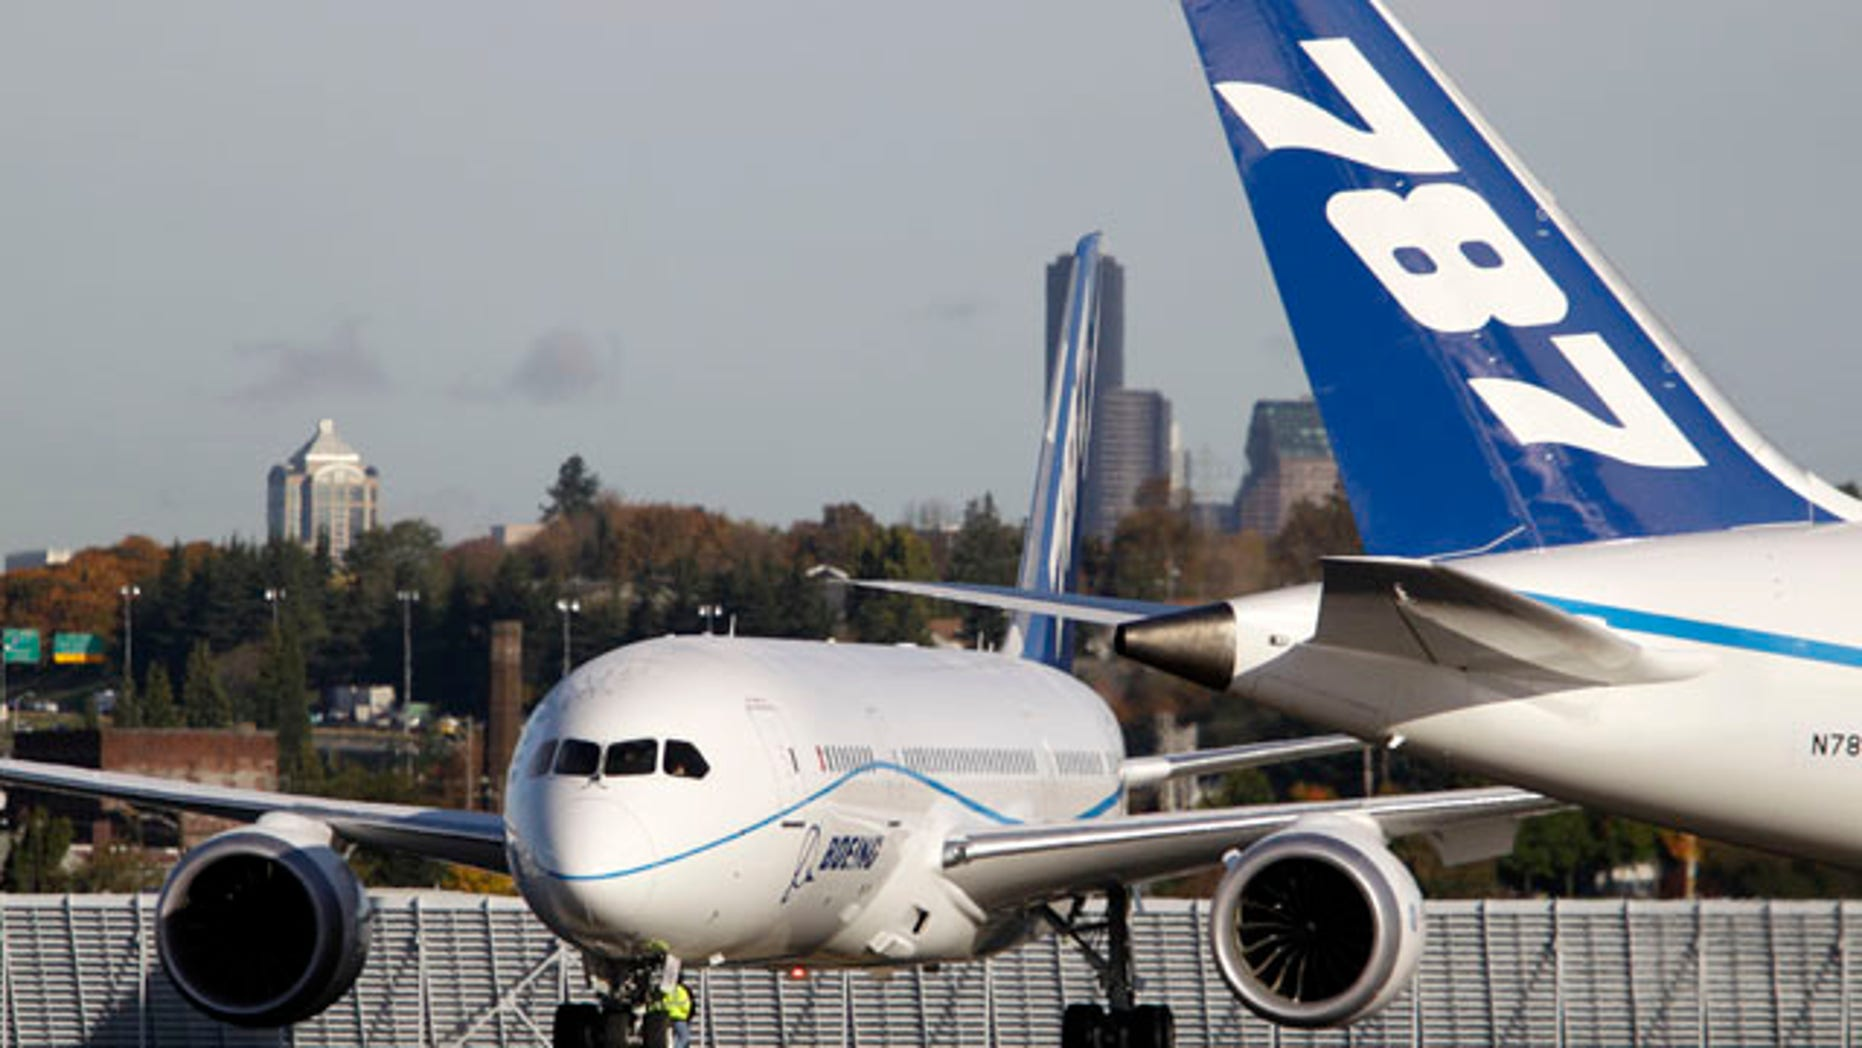 Oct. 27: One test model Boeing 787 passes another on the tarmac before a flight from Boeing Field, in Seattle. Boeing is putting off more test flights of its new 787 passenger jet while it investigates an emergency landing of one of the planes in Texas.